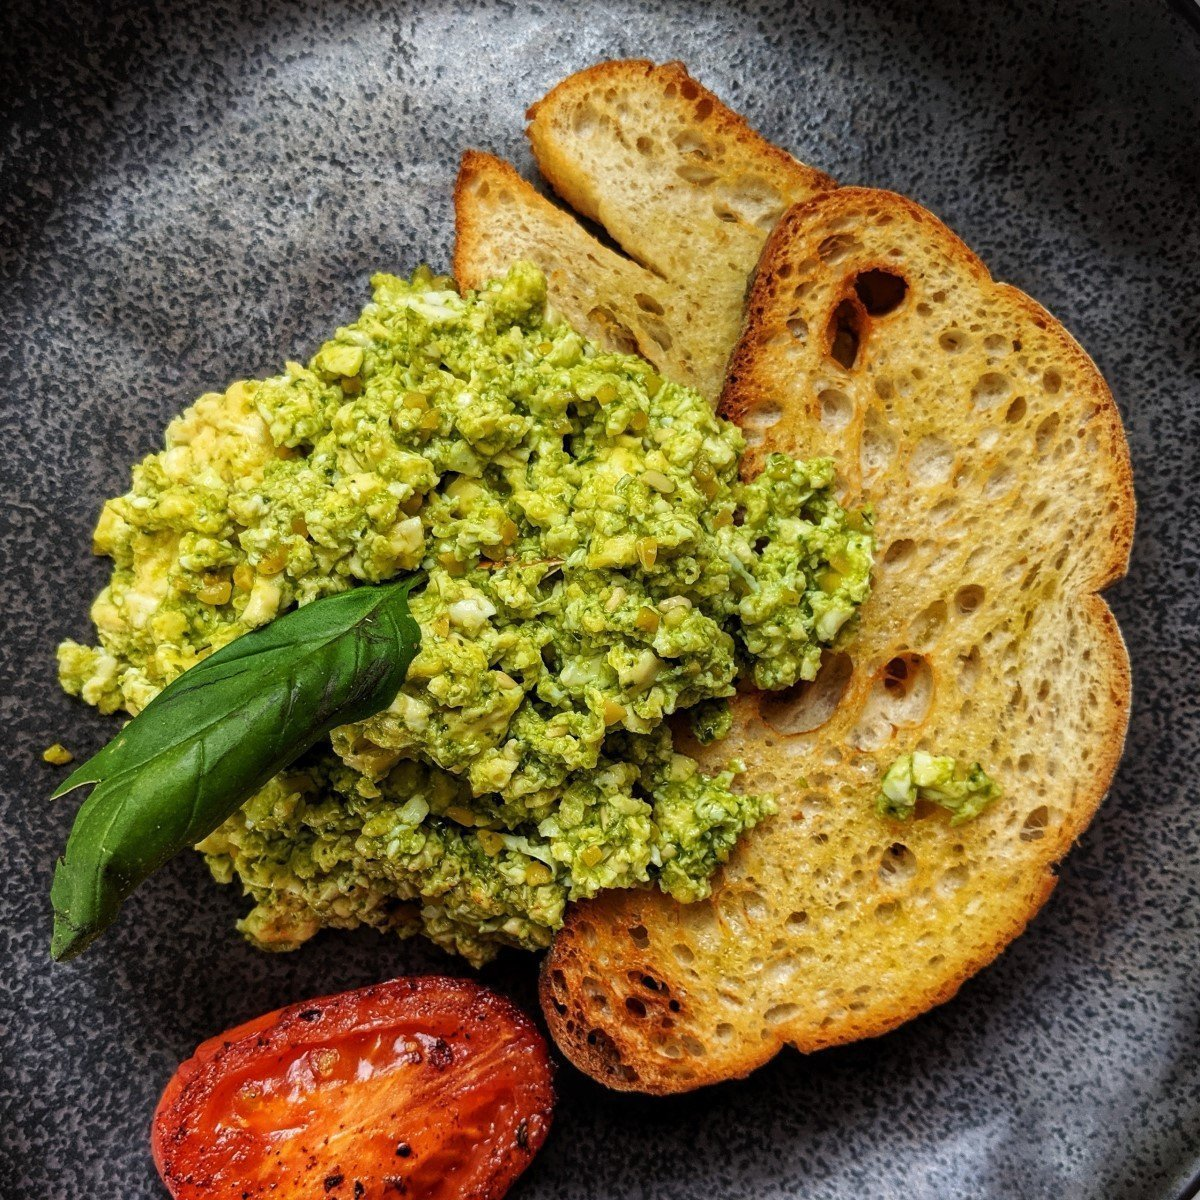 Pesto Scrambled Eggs aka Green Eggs Recipe